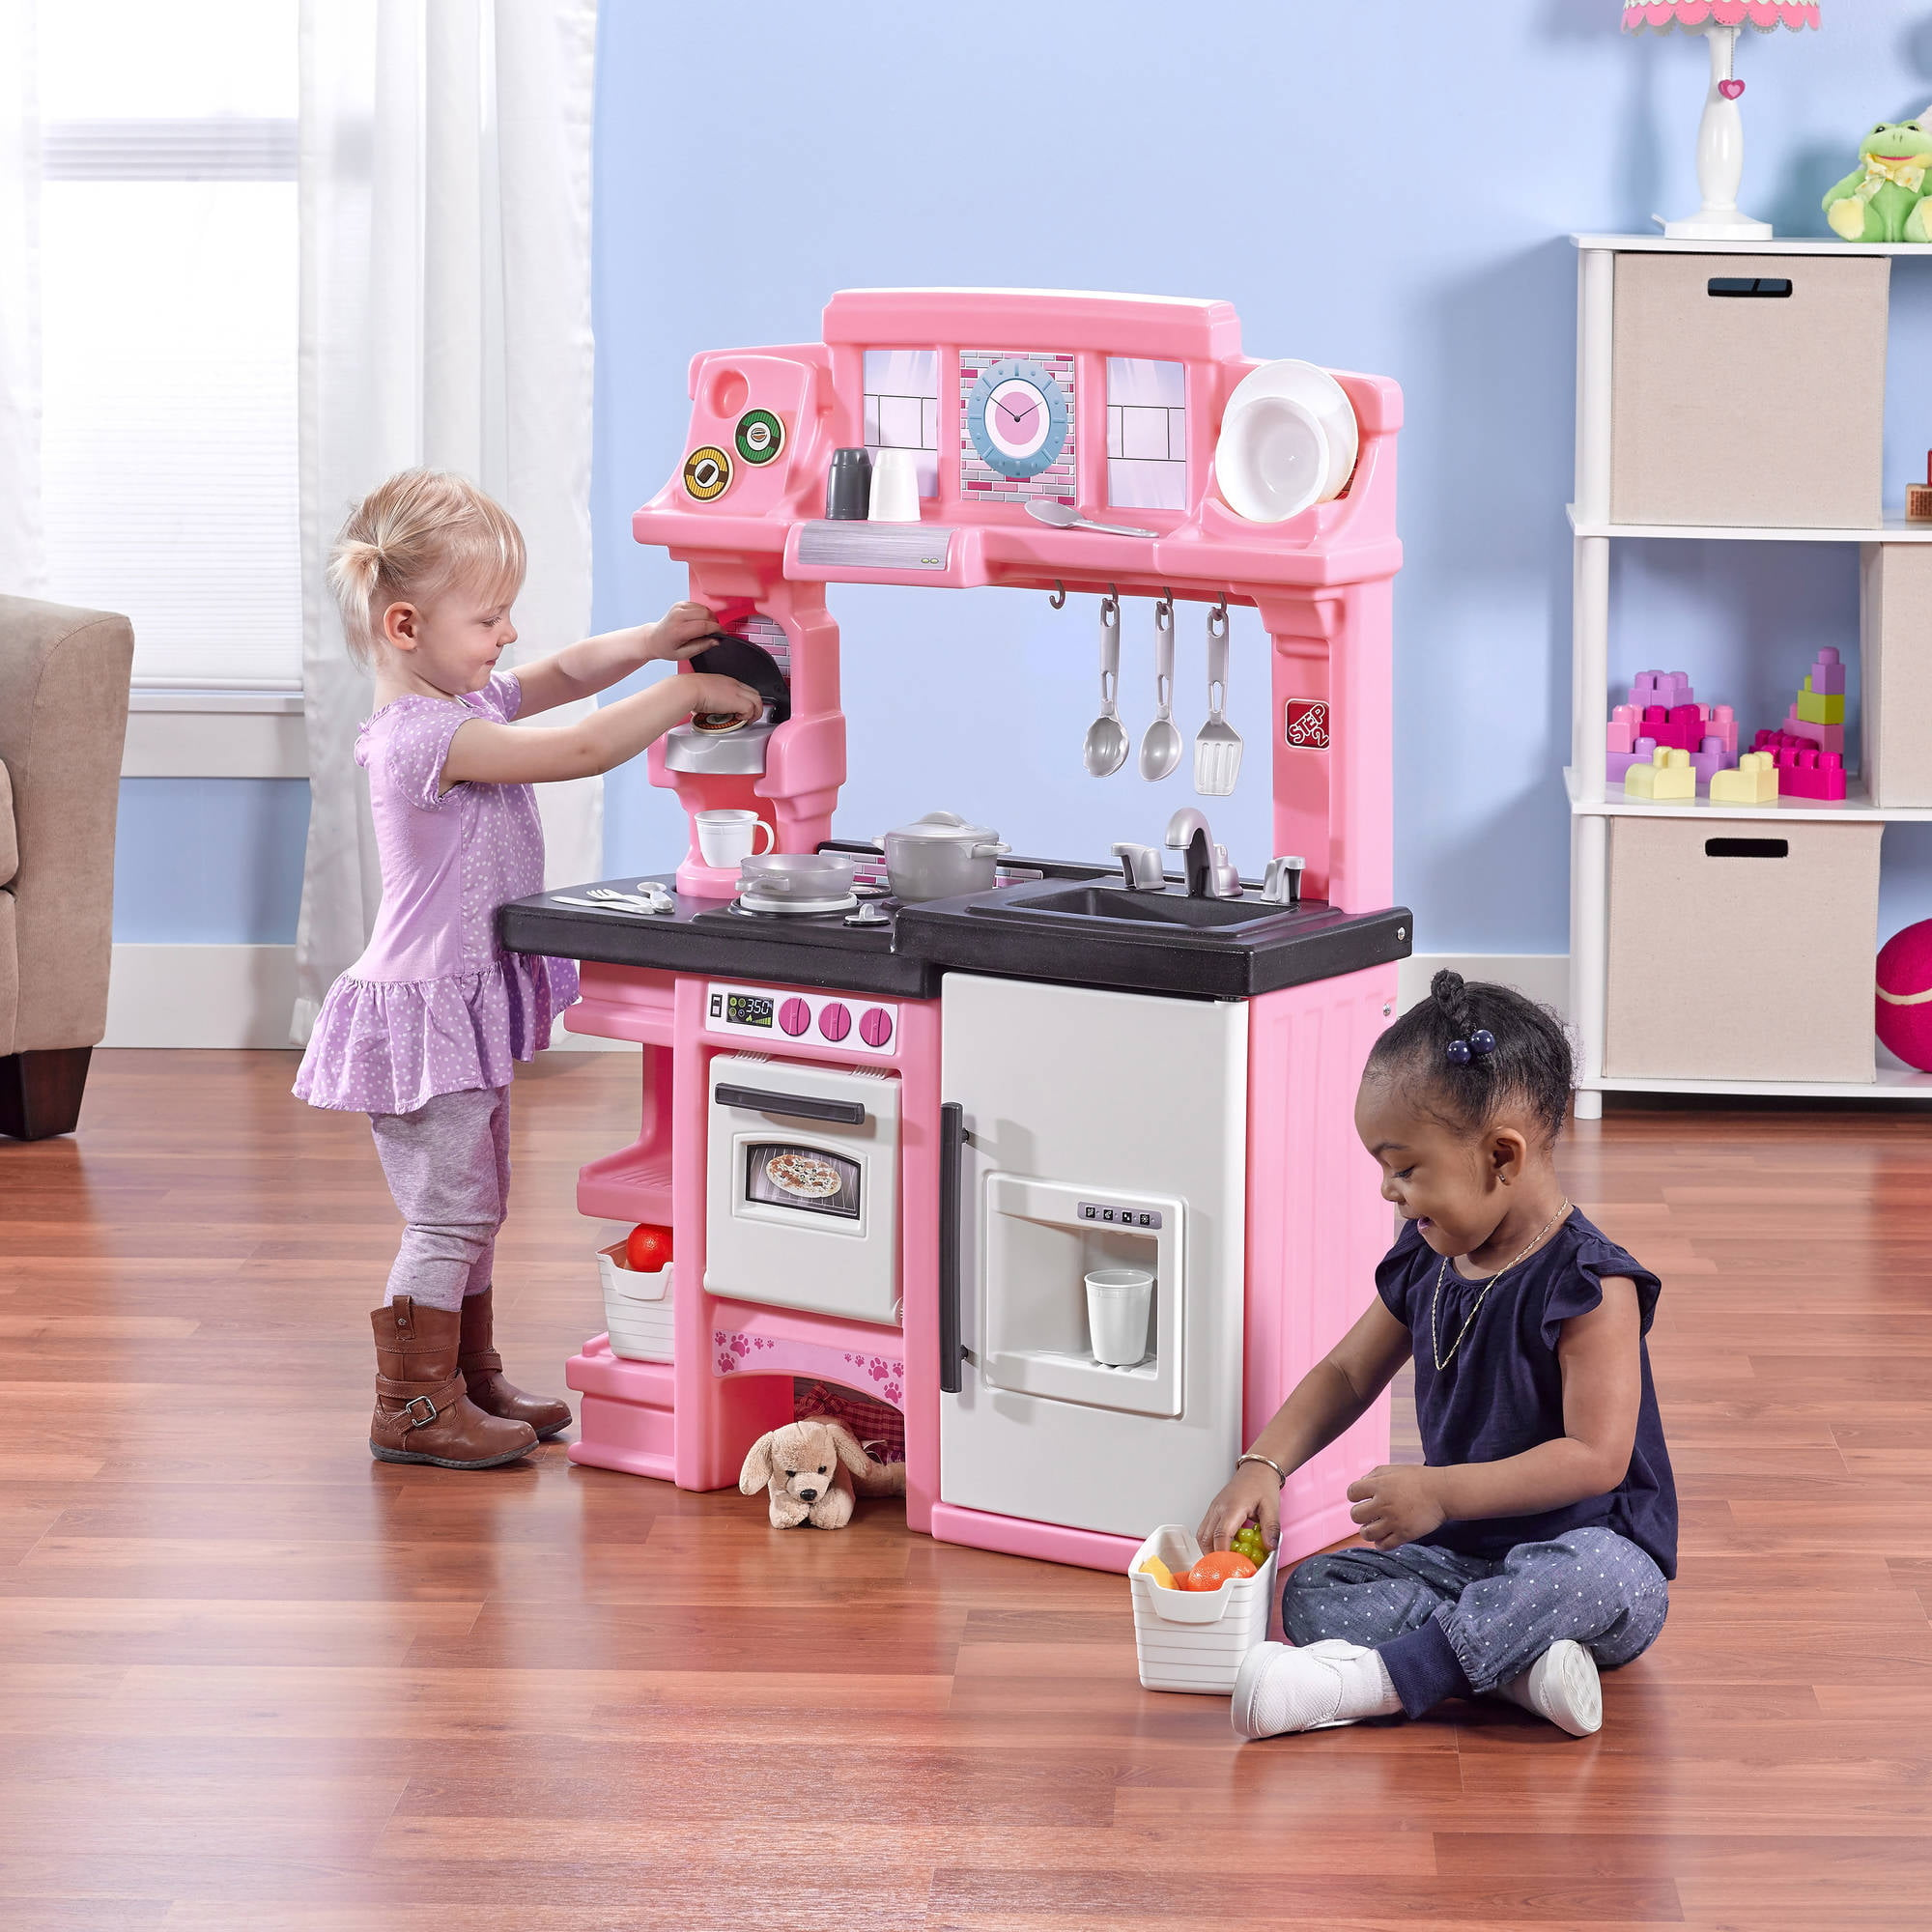 american plastic toys baker's kitchen ft. light up burner with